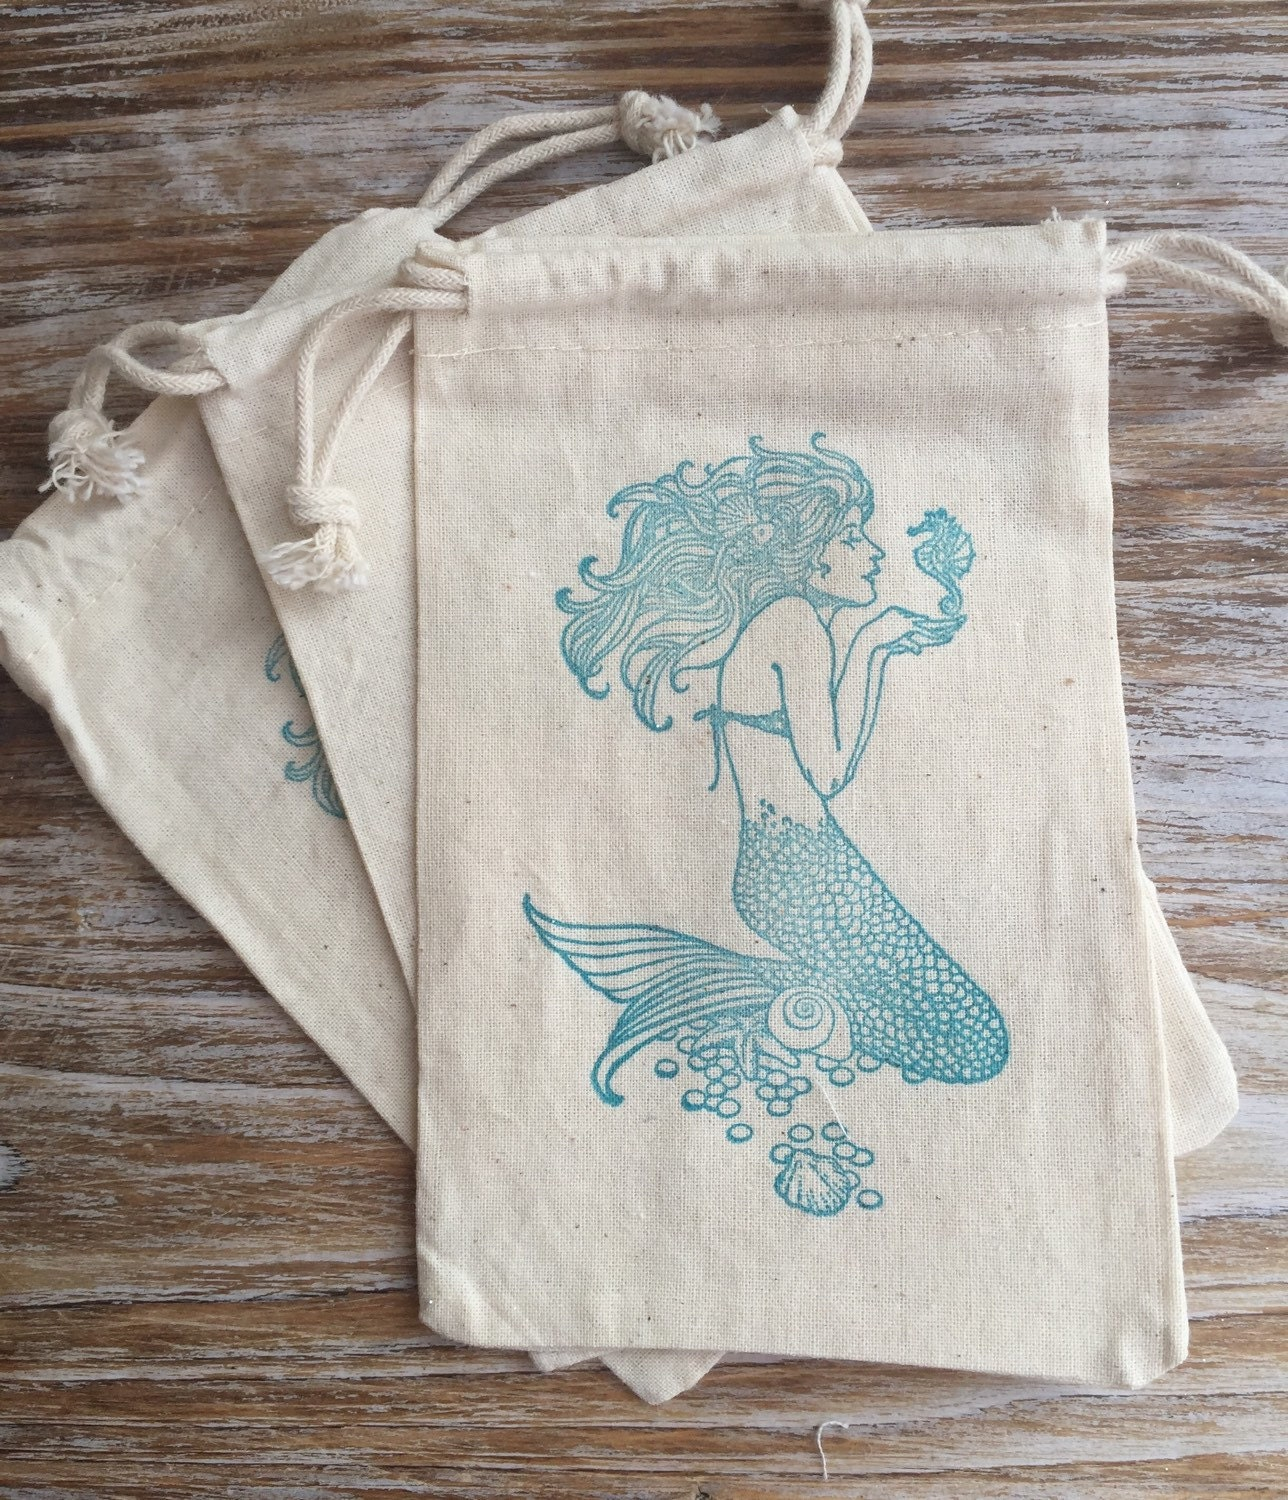 Wedding Favor Bags Beach : 10 Mermaid Favor Bags, Mermaid Party Favors, Beach Wedding Favor ...